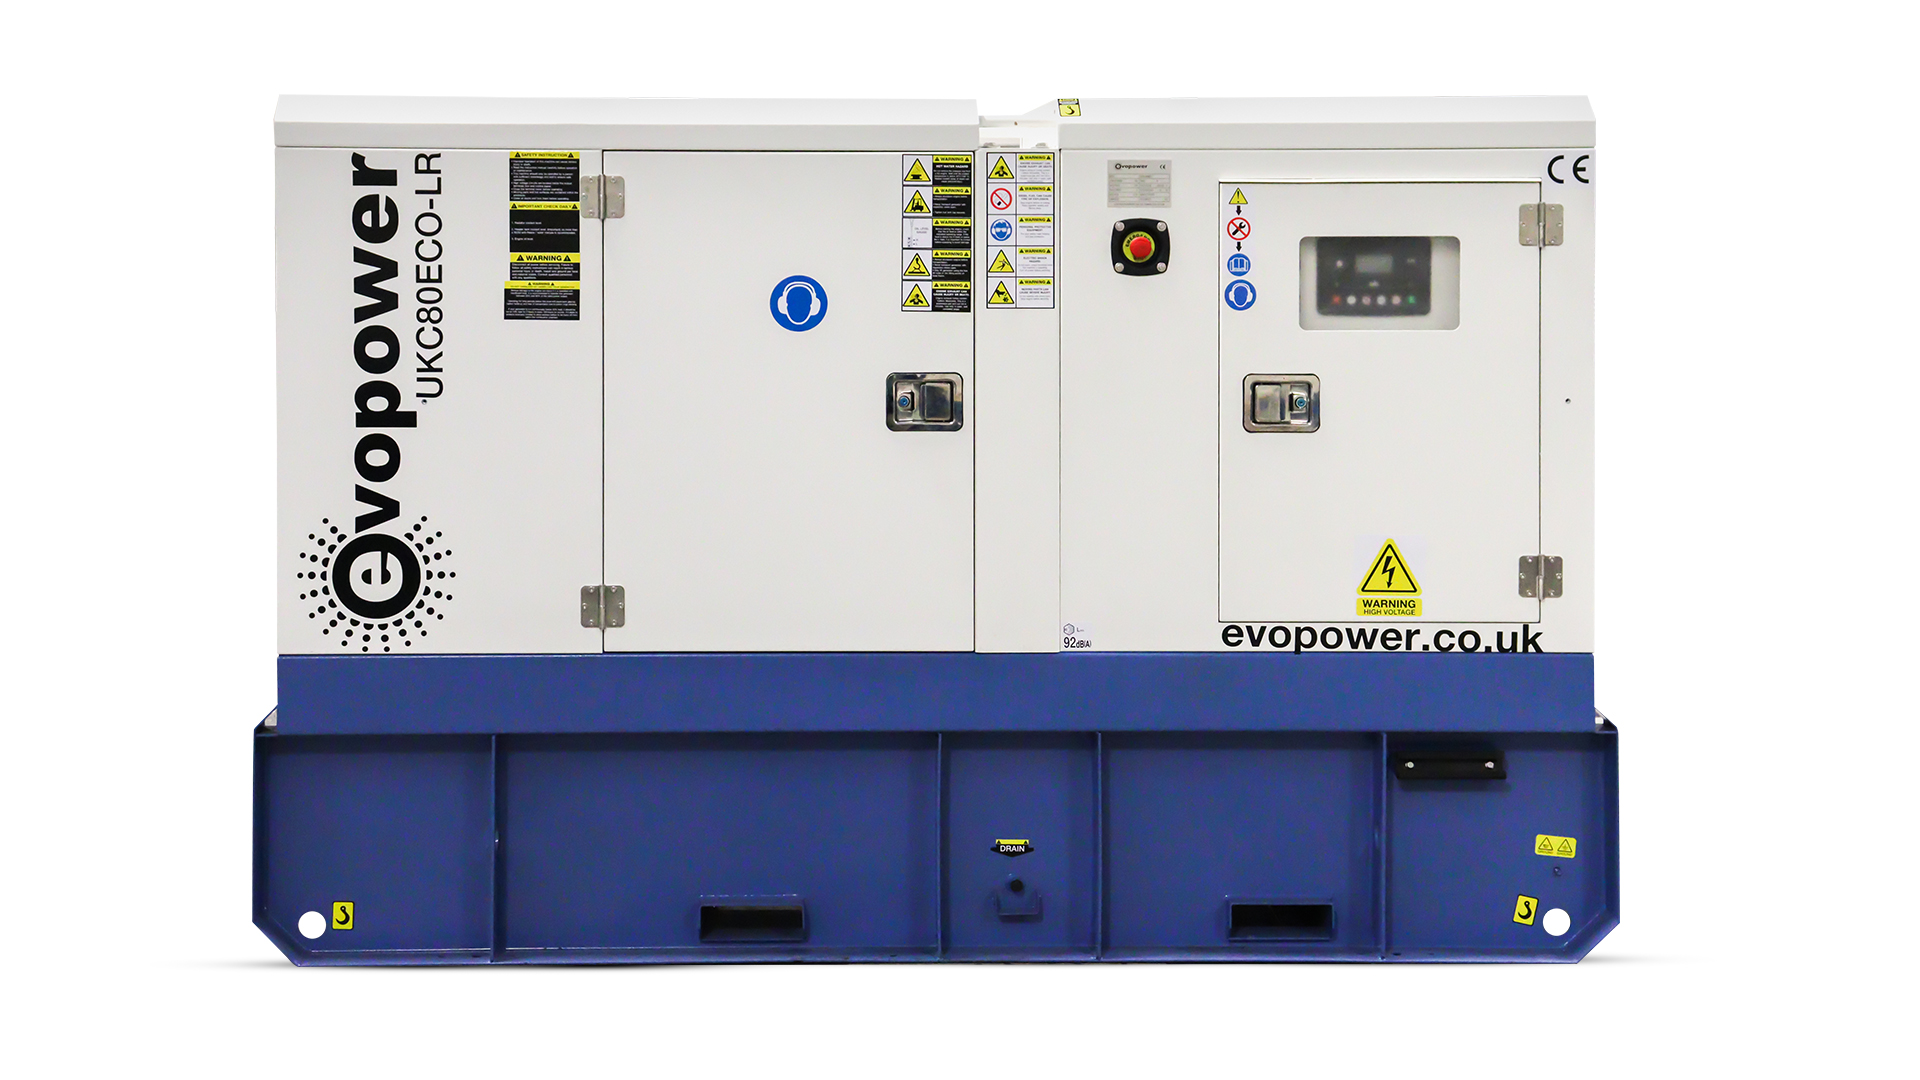 Front view of Cummins powered 80kVA UKC80ECO-LR generator